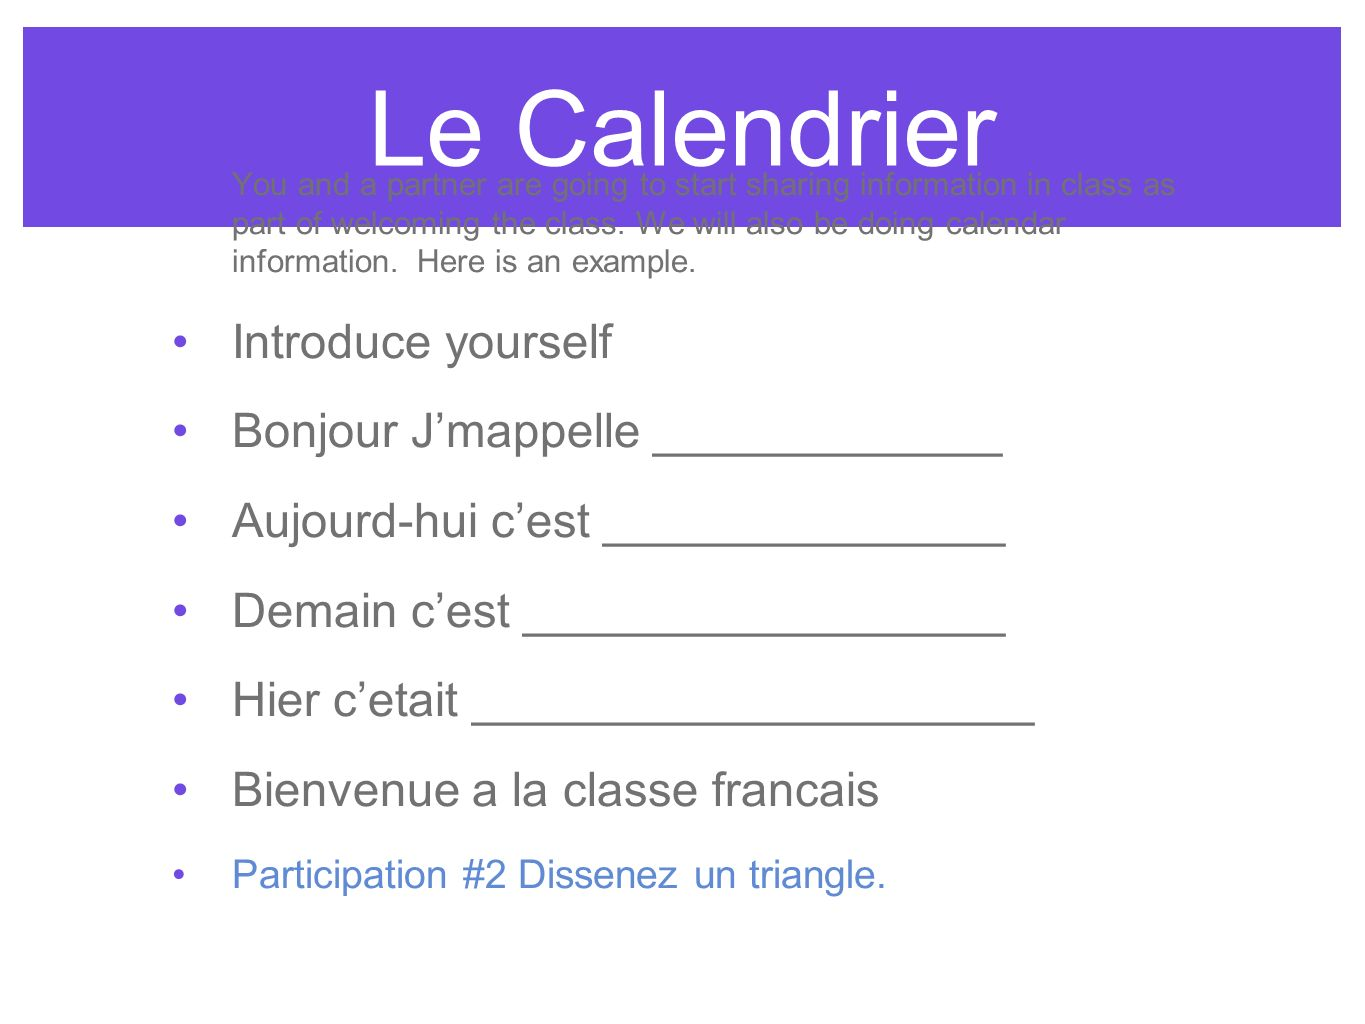 Le Calendrier You and a partner are going to start sharing information in class as part of welcoming the class. We will also be doing calendar informa